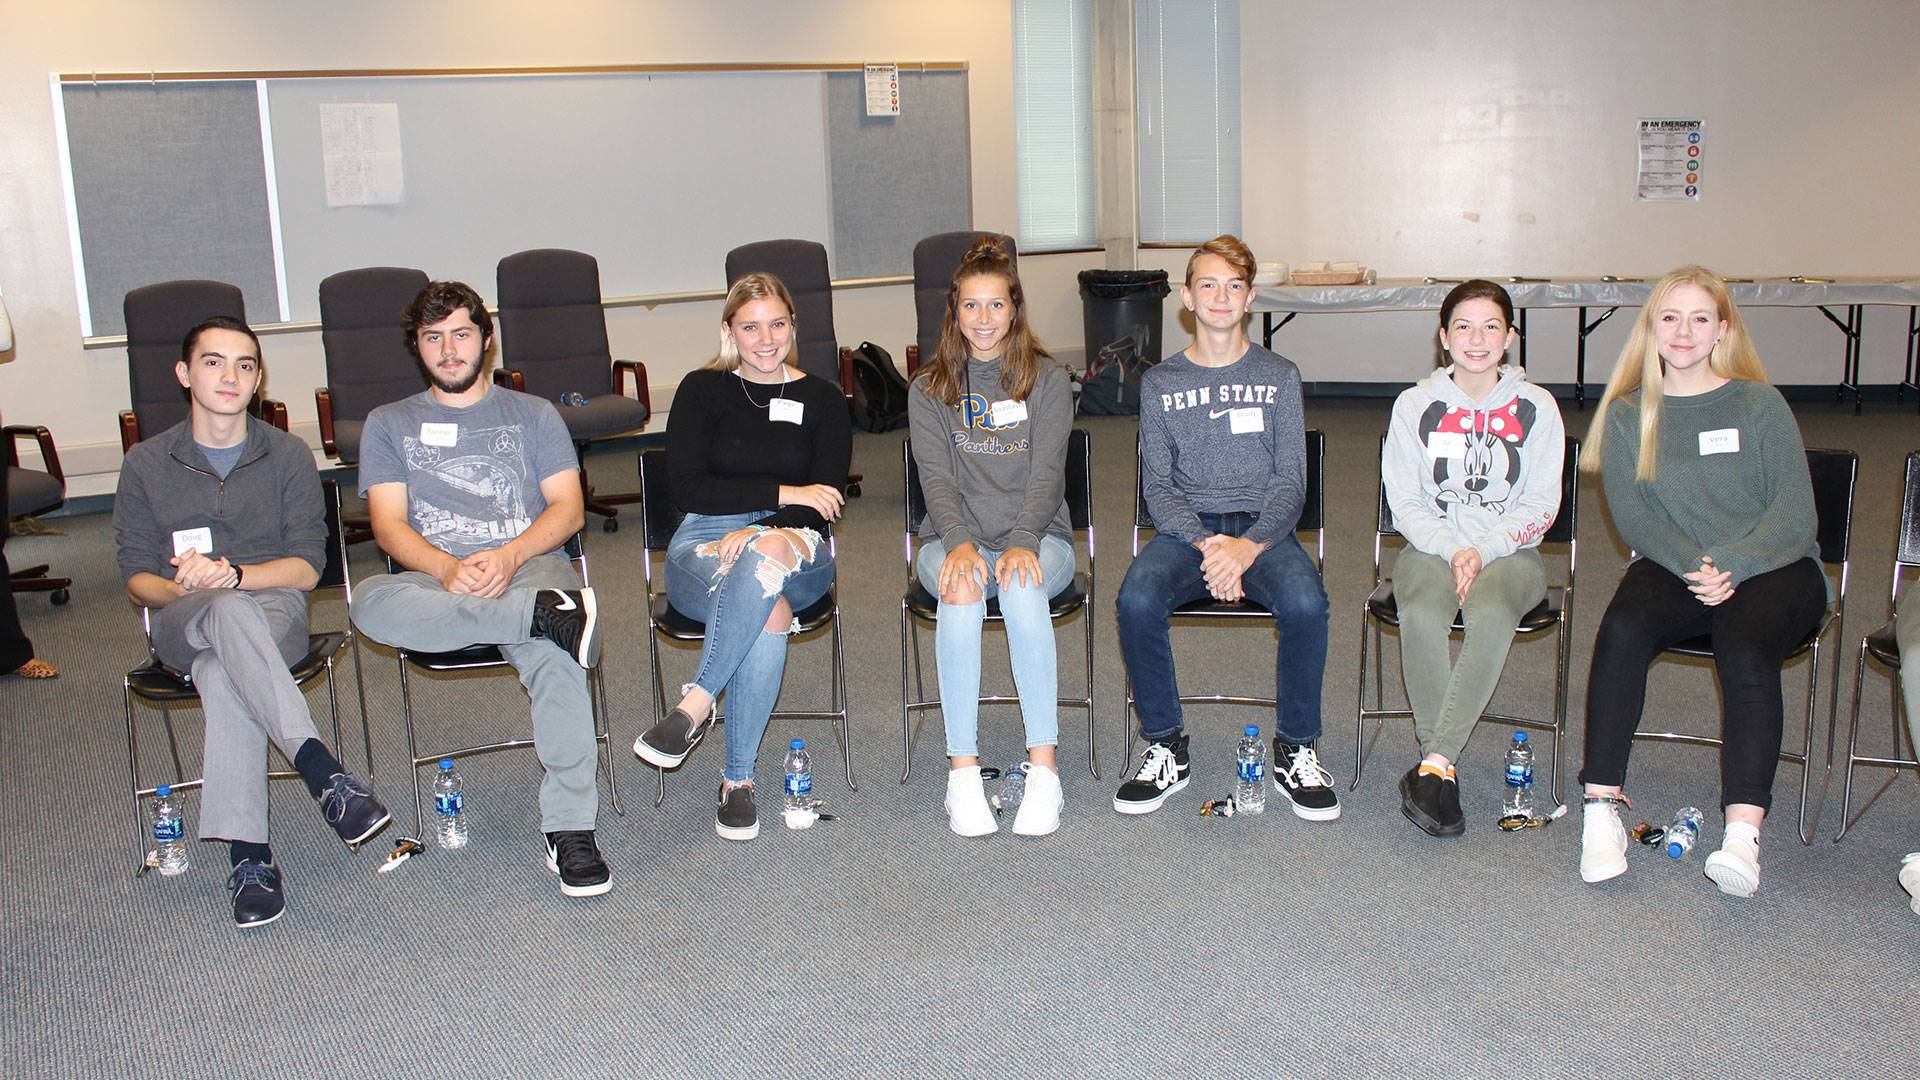 North Hills High School students participated in a Safe2Say roundtable discussion with Attorney Gene